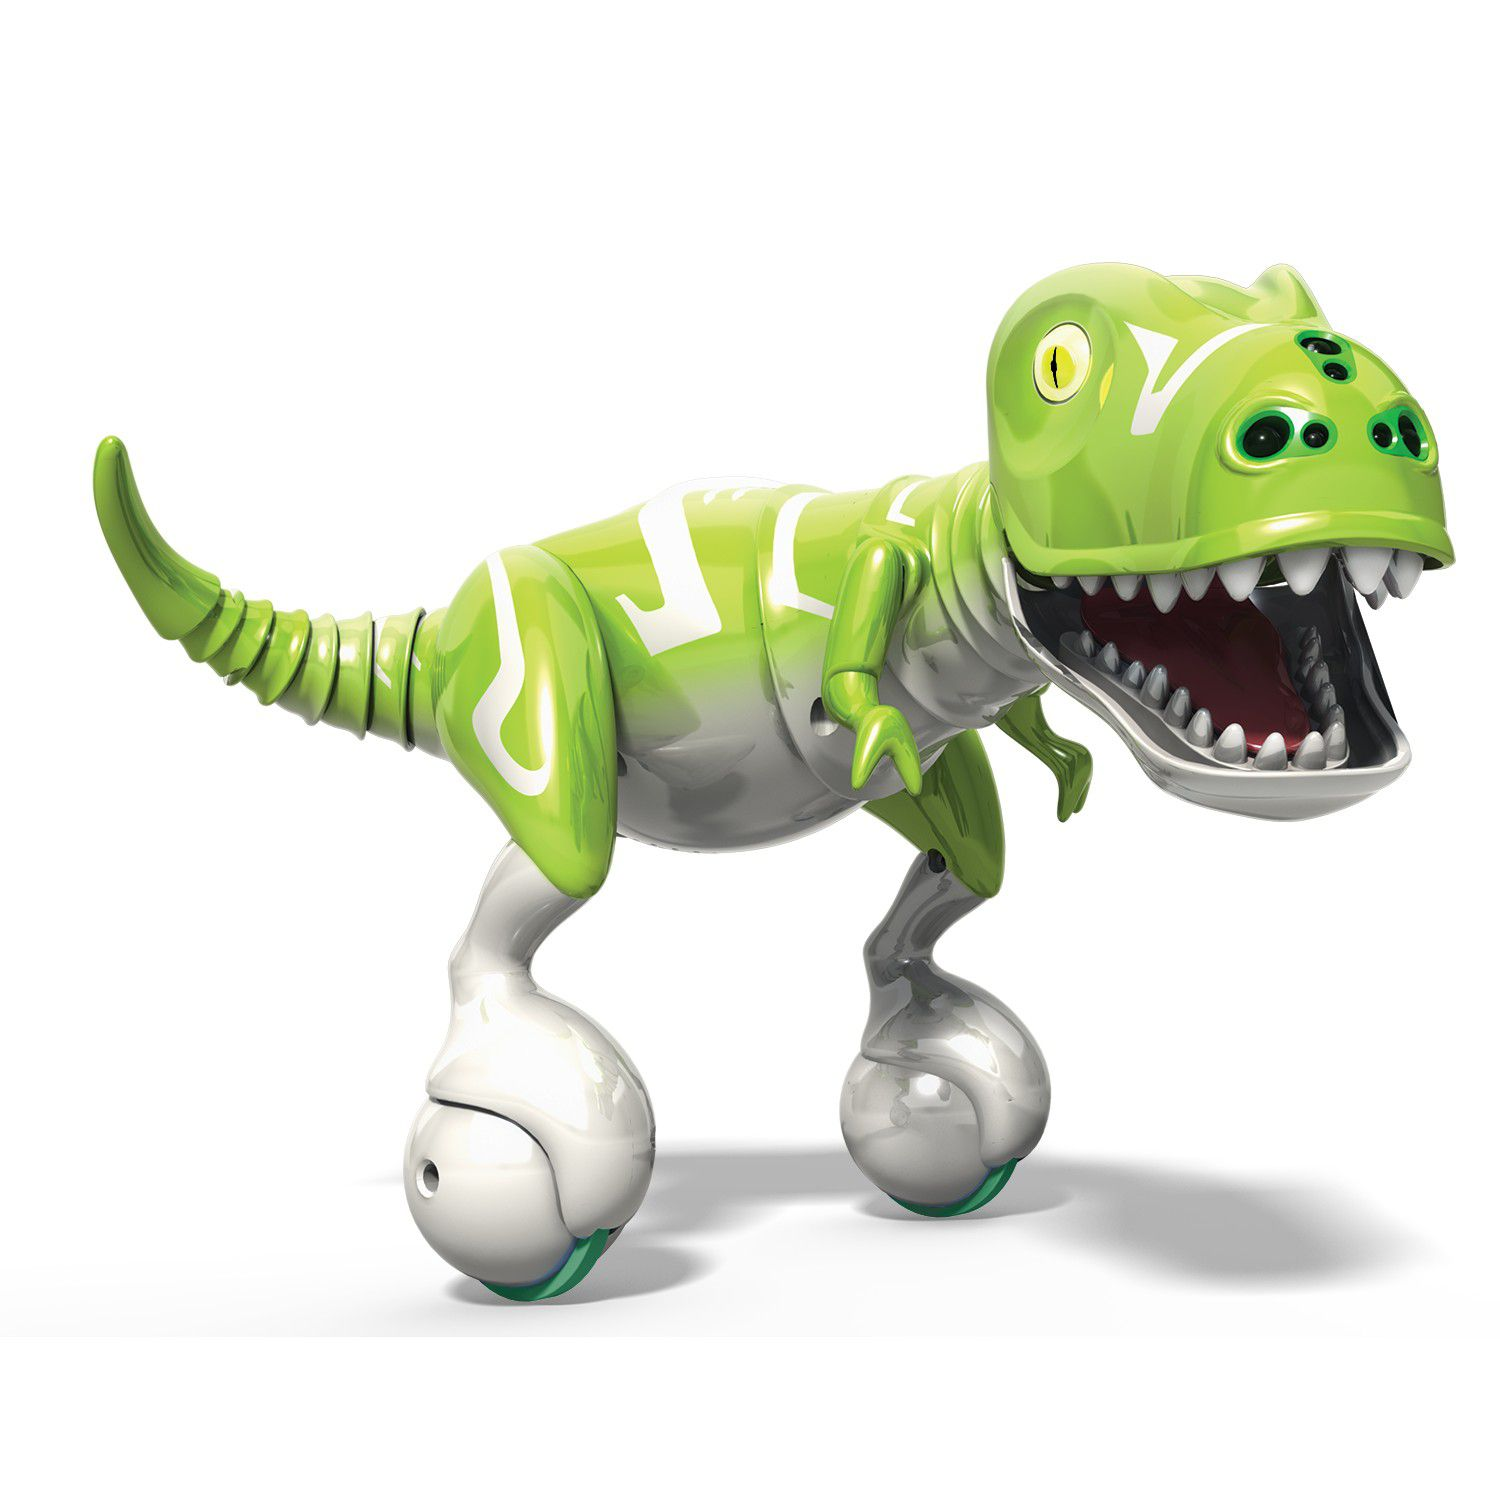 Popular Dinosaur Toys : Dinosaur toys for kids